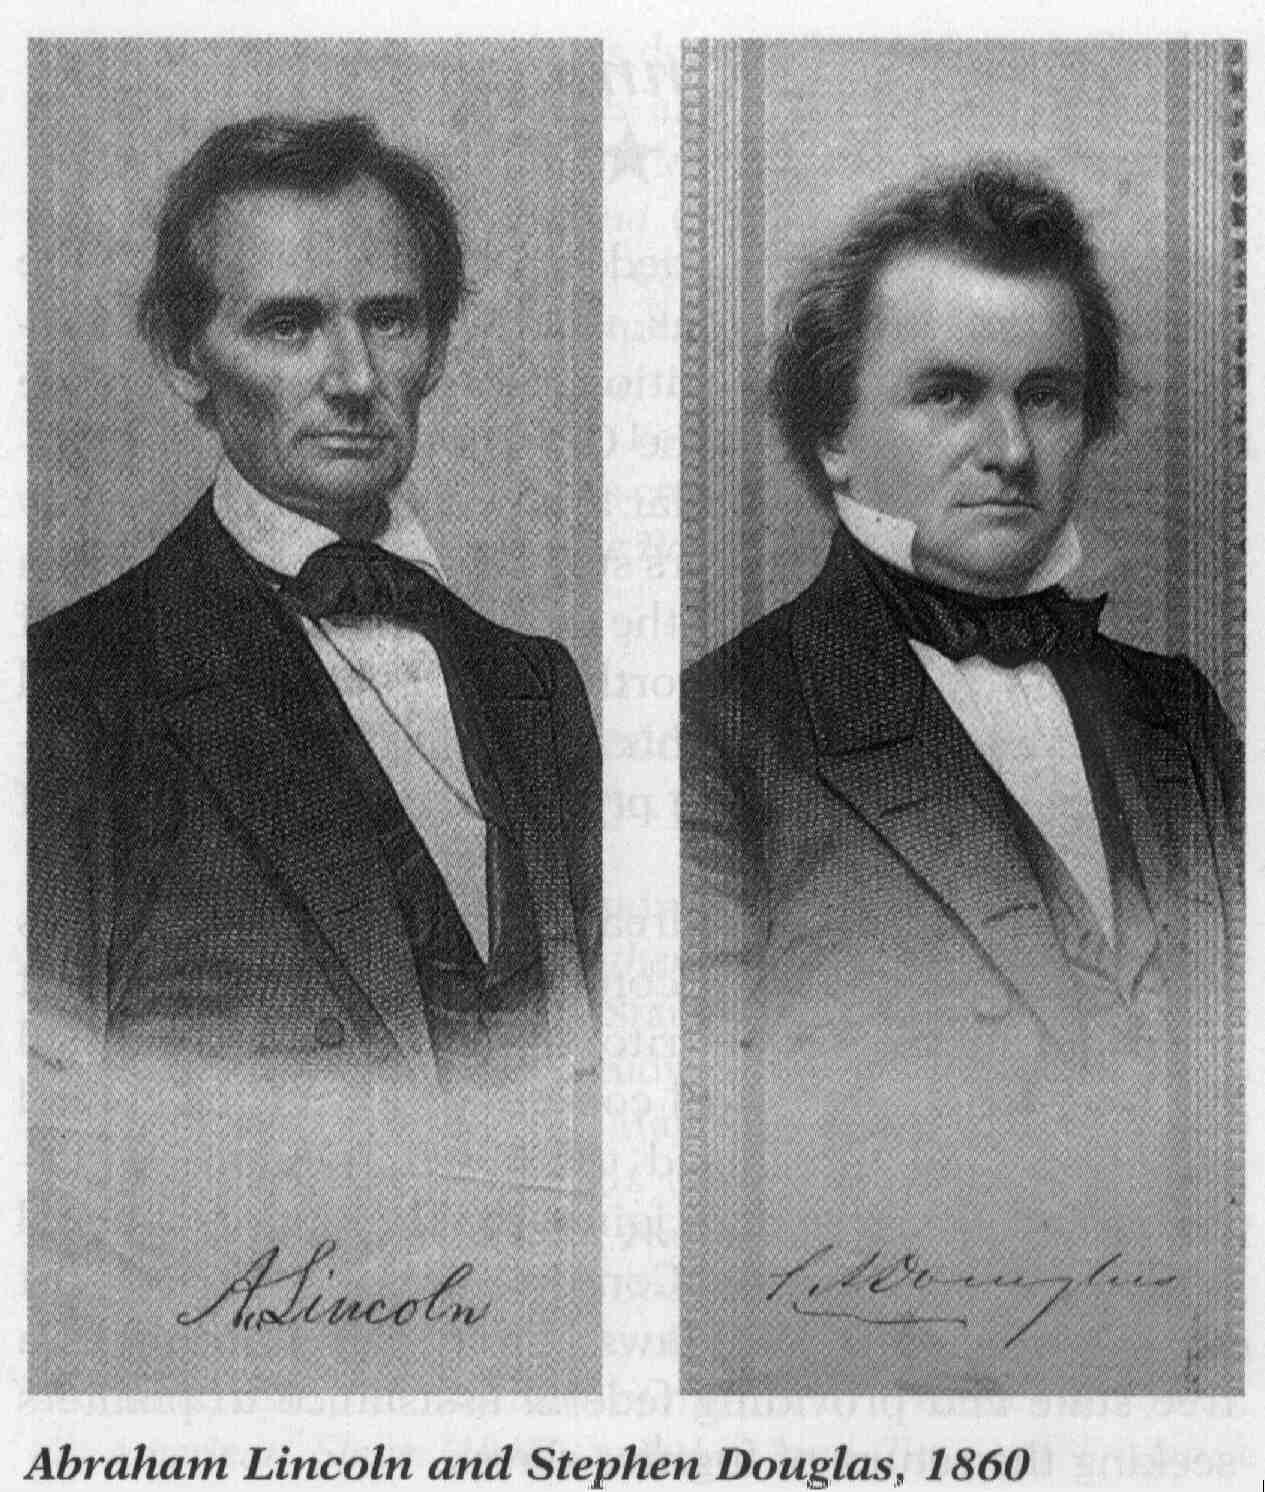 an analysis of the debates with senator stephen a douglas and lincoln Lincoln loses first of the lincoln-douglas debates on slavery august 21, 1858, was the day that abraham lincoln and stephen a douglas met in ottawa, illinois, in the first of the famous lincoln-douglas.